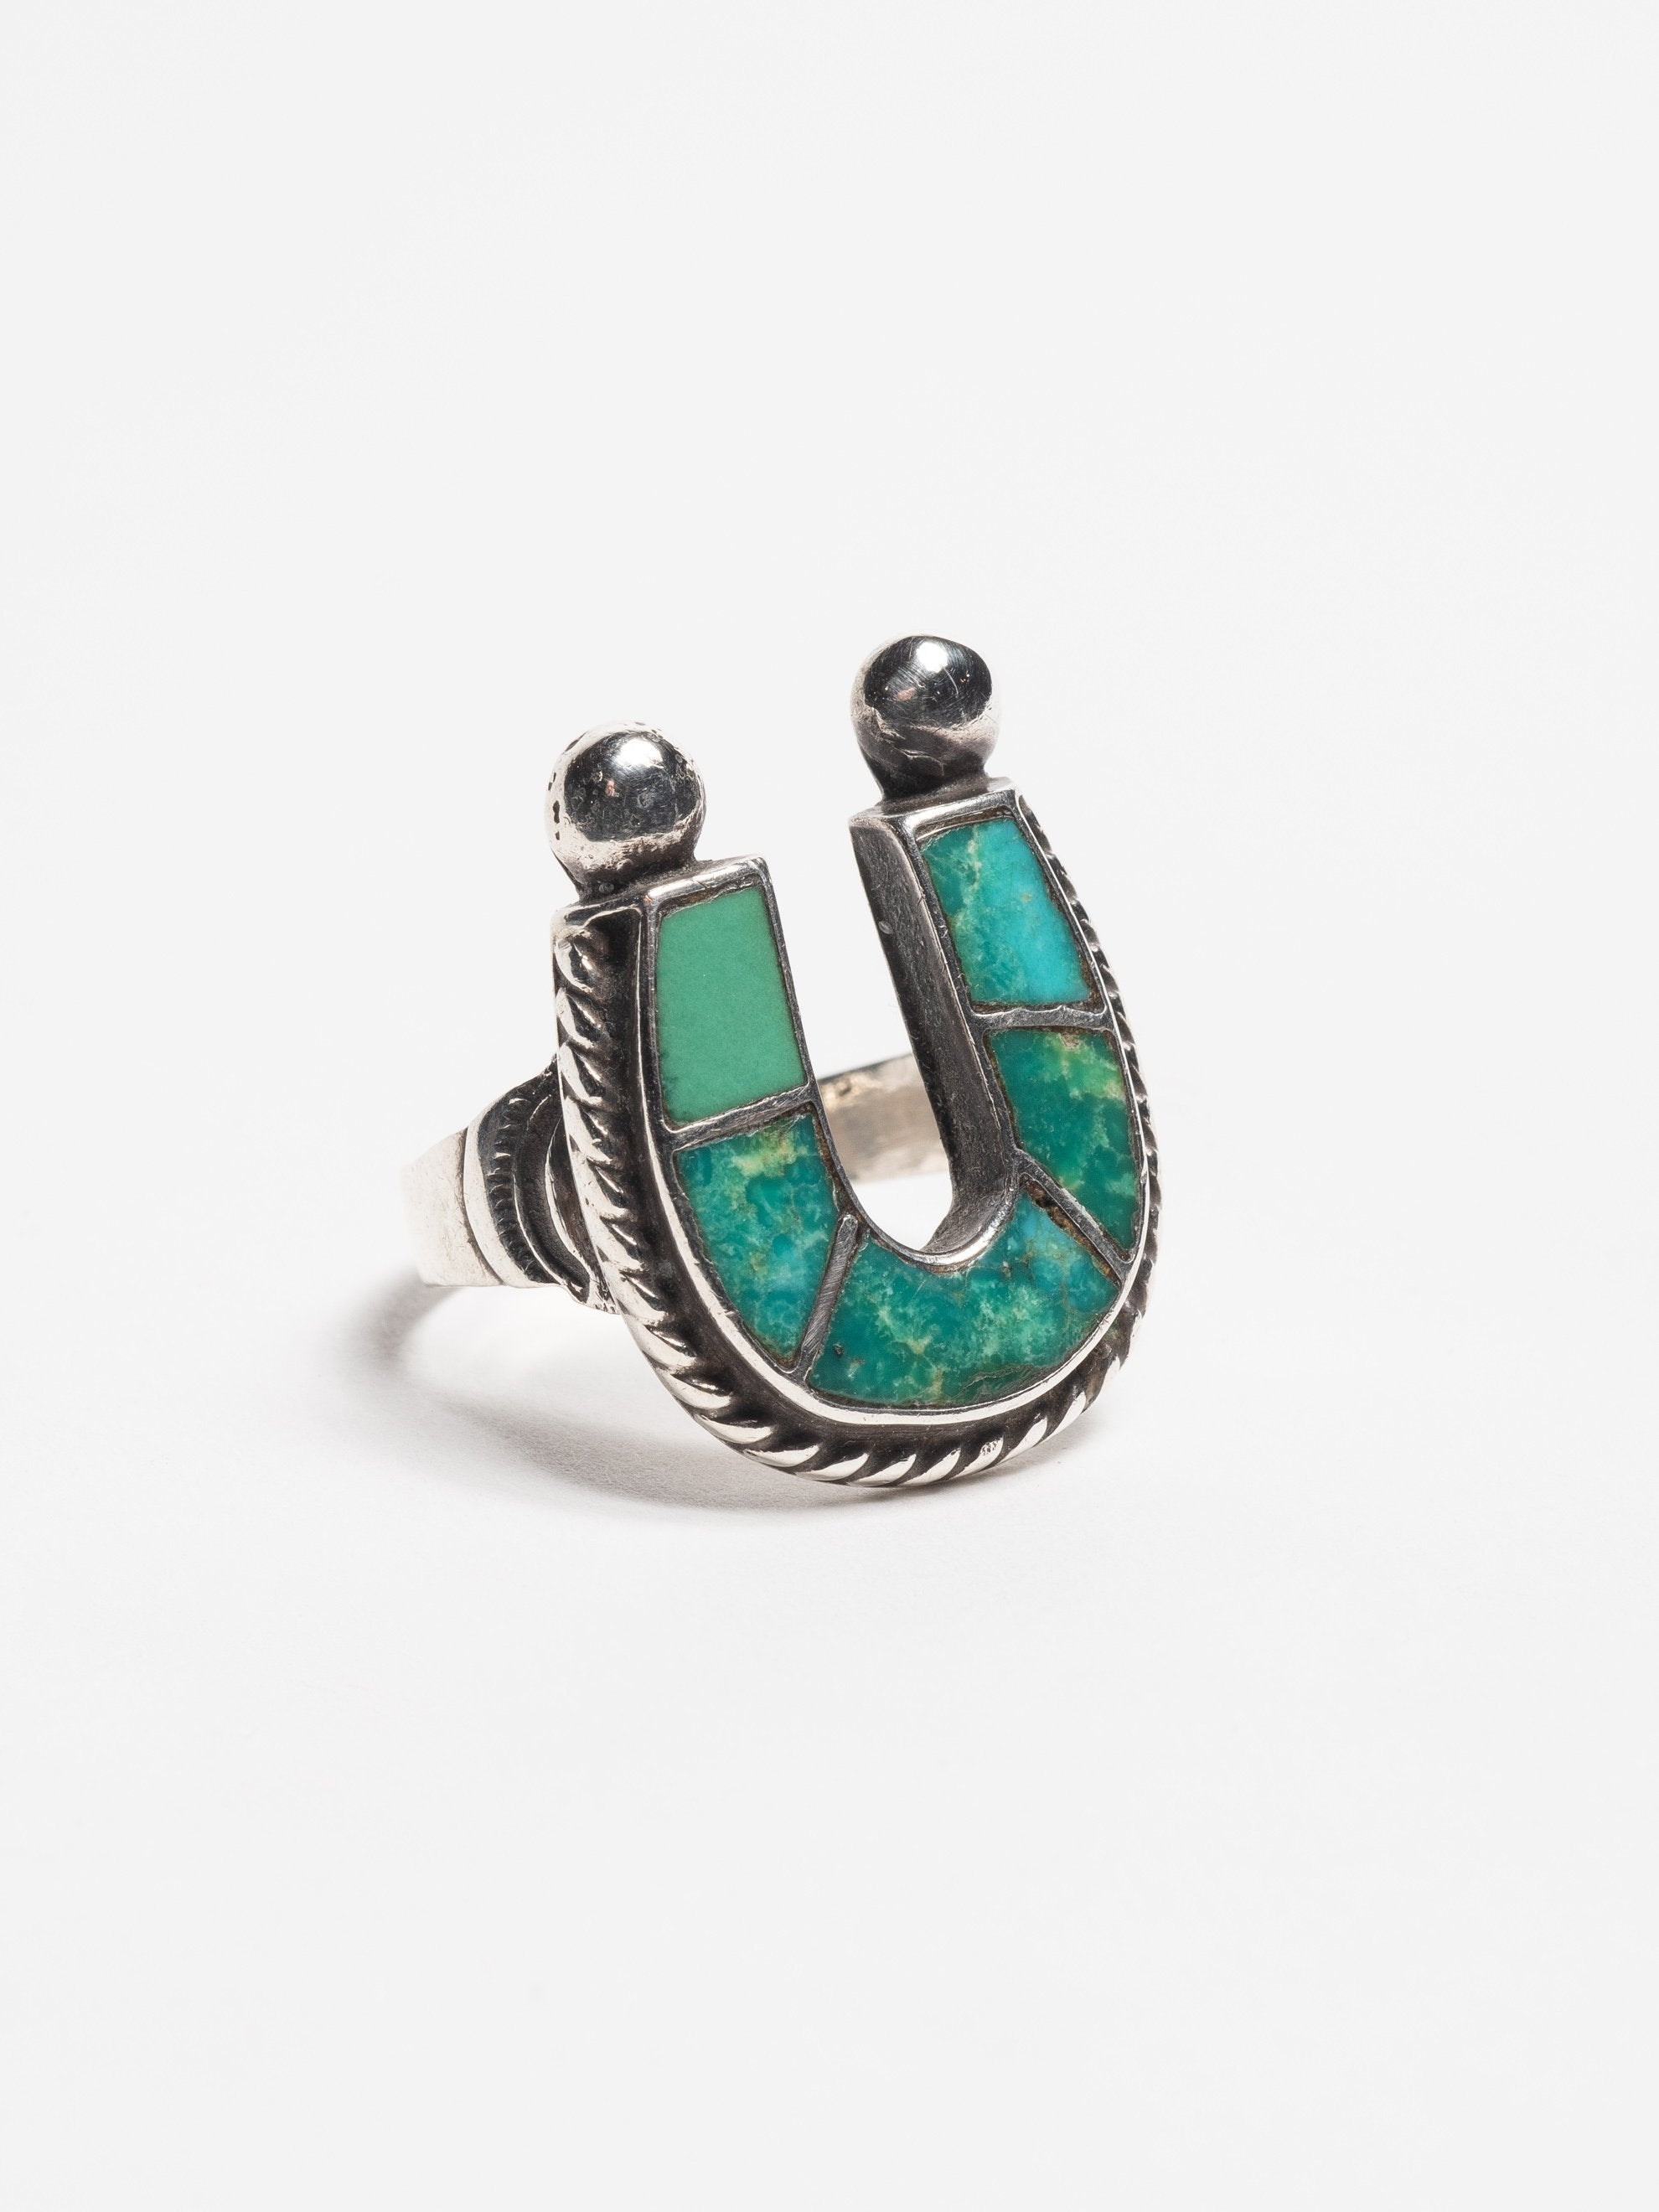 Sterling Silver Vintage 1950's Navajo Sterling Silver & Turquoise lucky horse- shoe ring 2